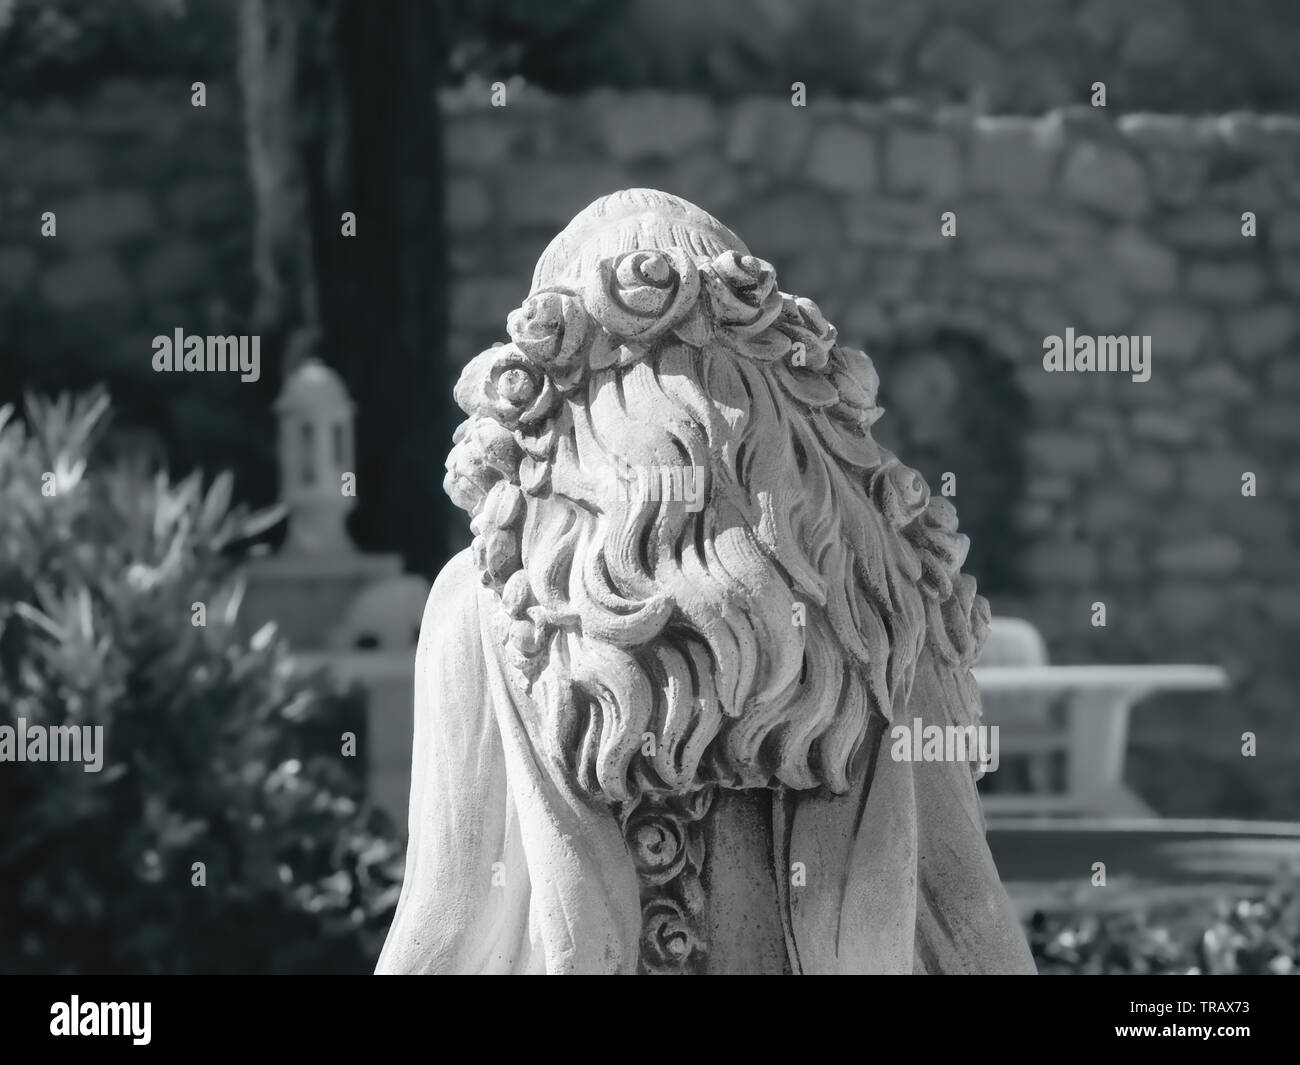 upper back view of a white stone female statue, curly long hair with a rose band on the head, black and white shot - Stock Image